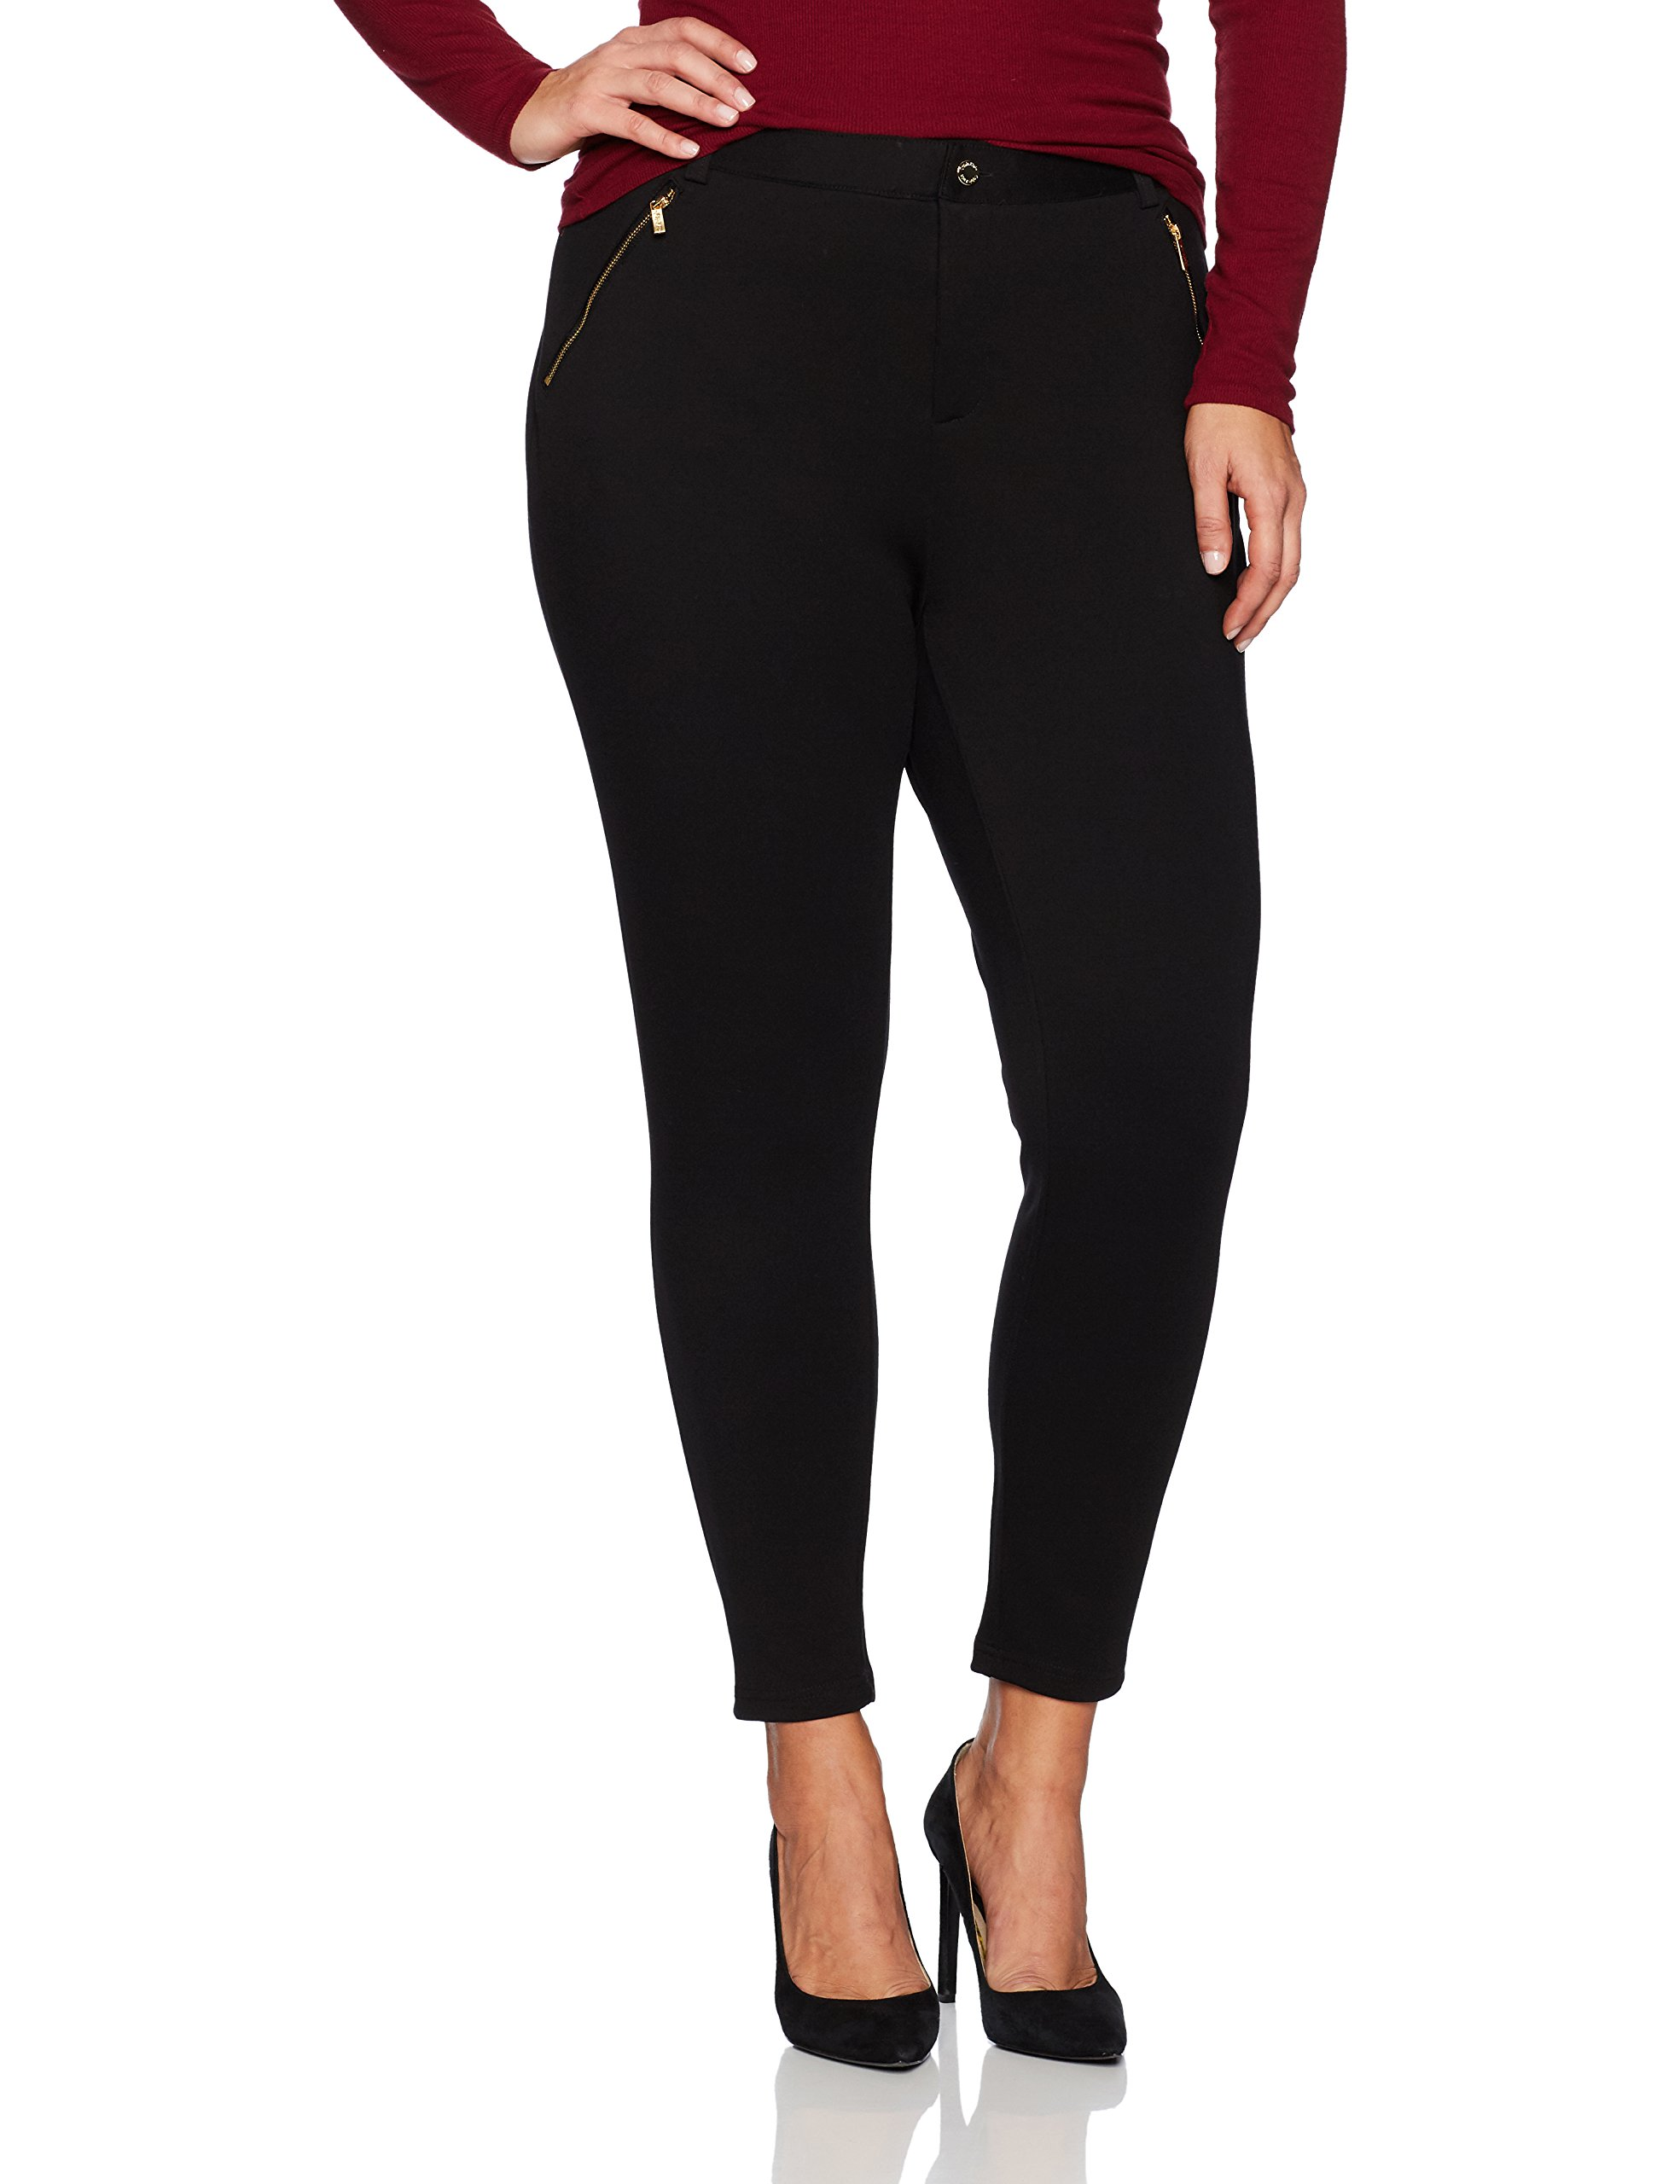 Calvin Klein Women's Plus Size Compression Pant with Zips, Black, 2X by Calvin Klein